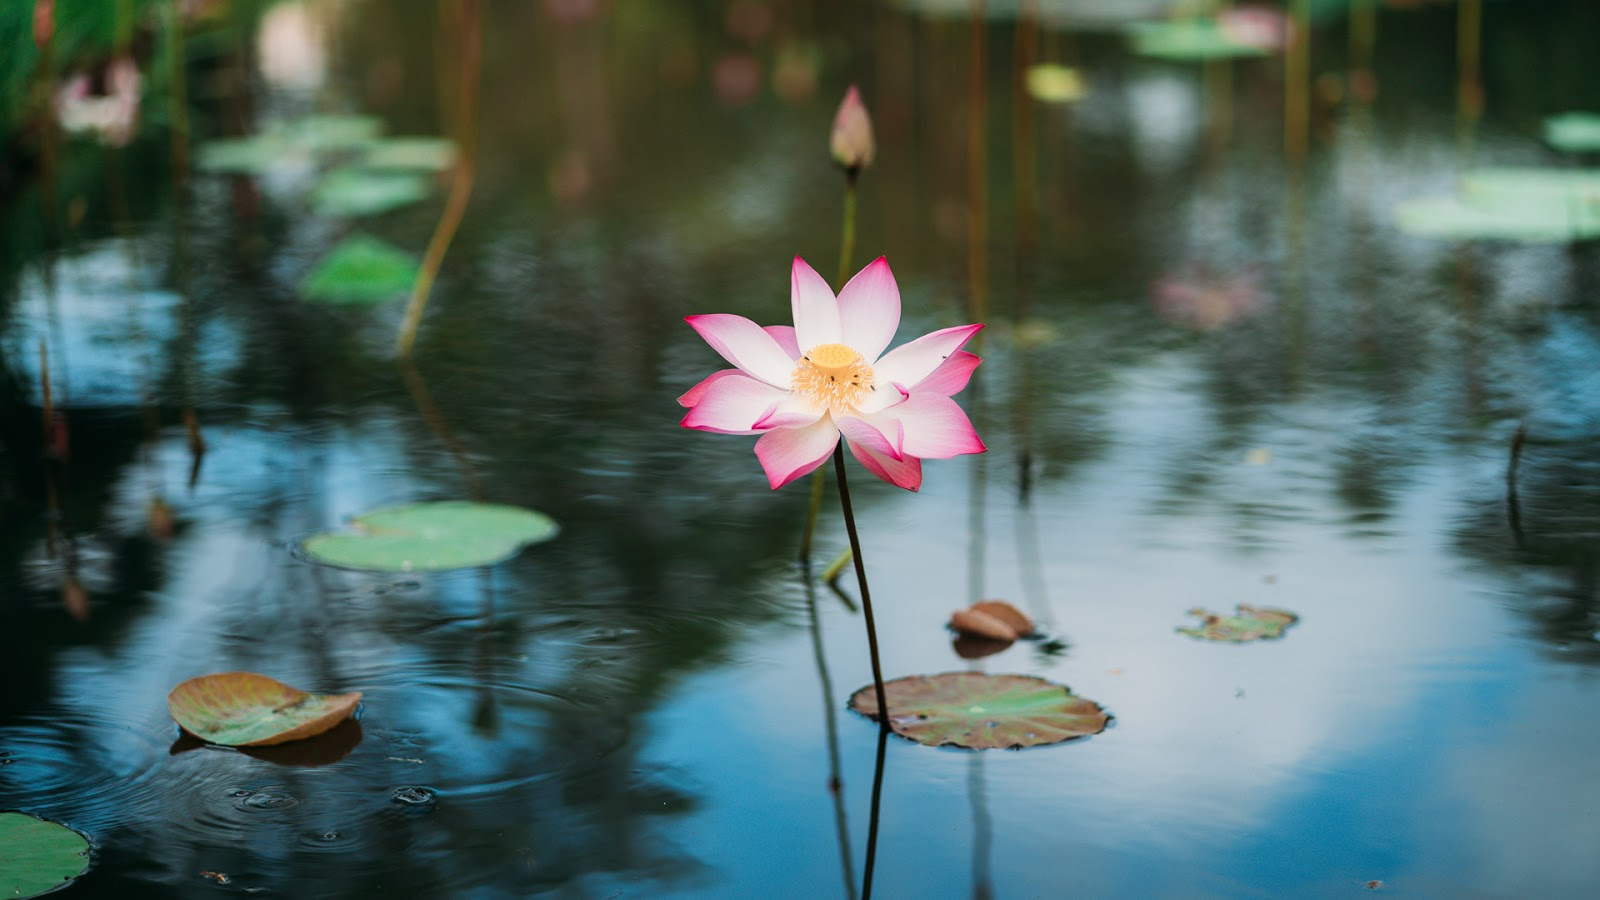 Sacred lotus growing in water